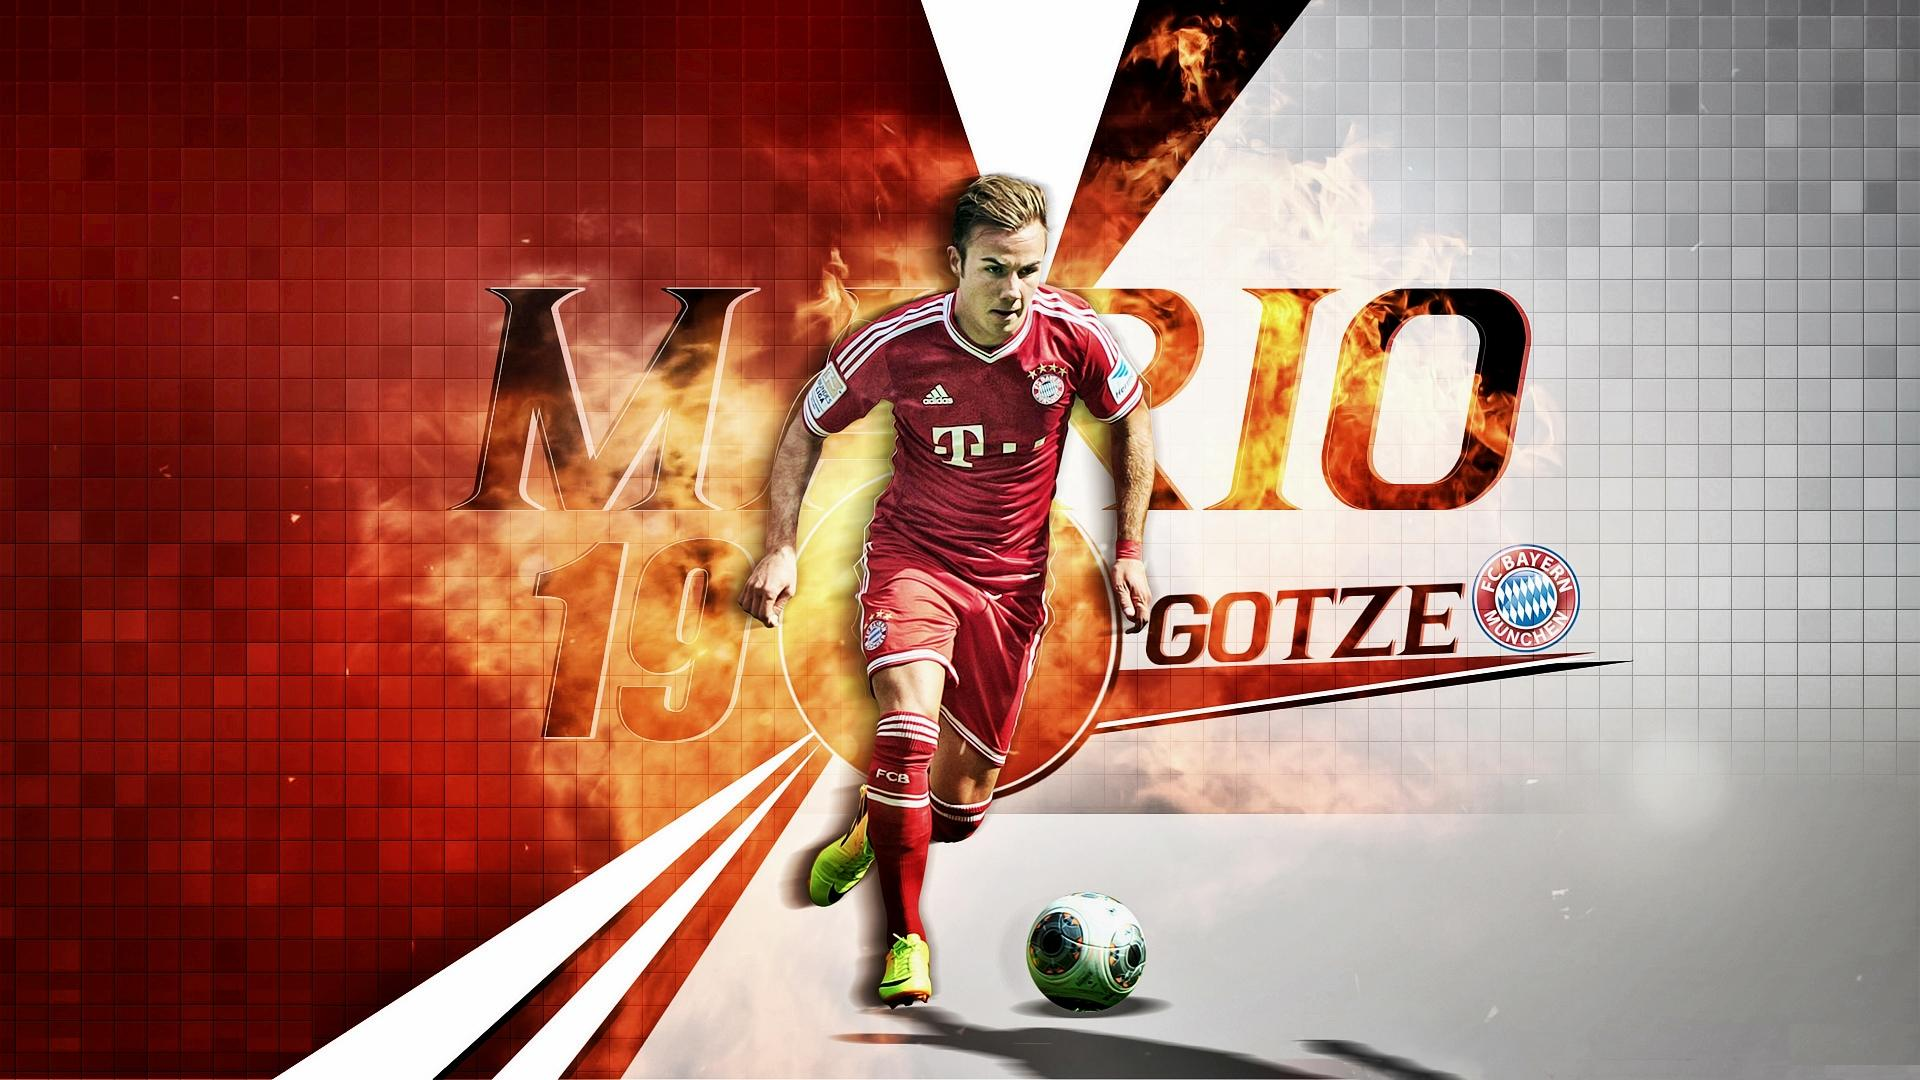 mario gotze bayern munich mario gotze photo mario gotze german player 1012